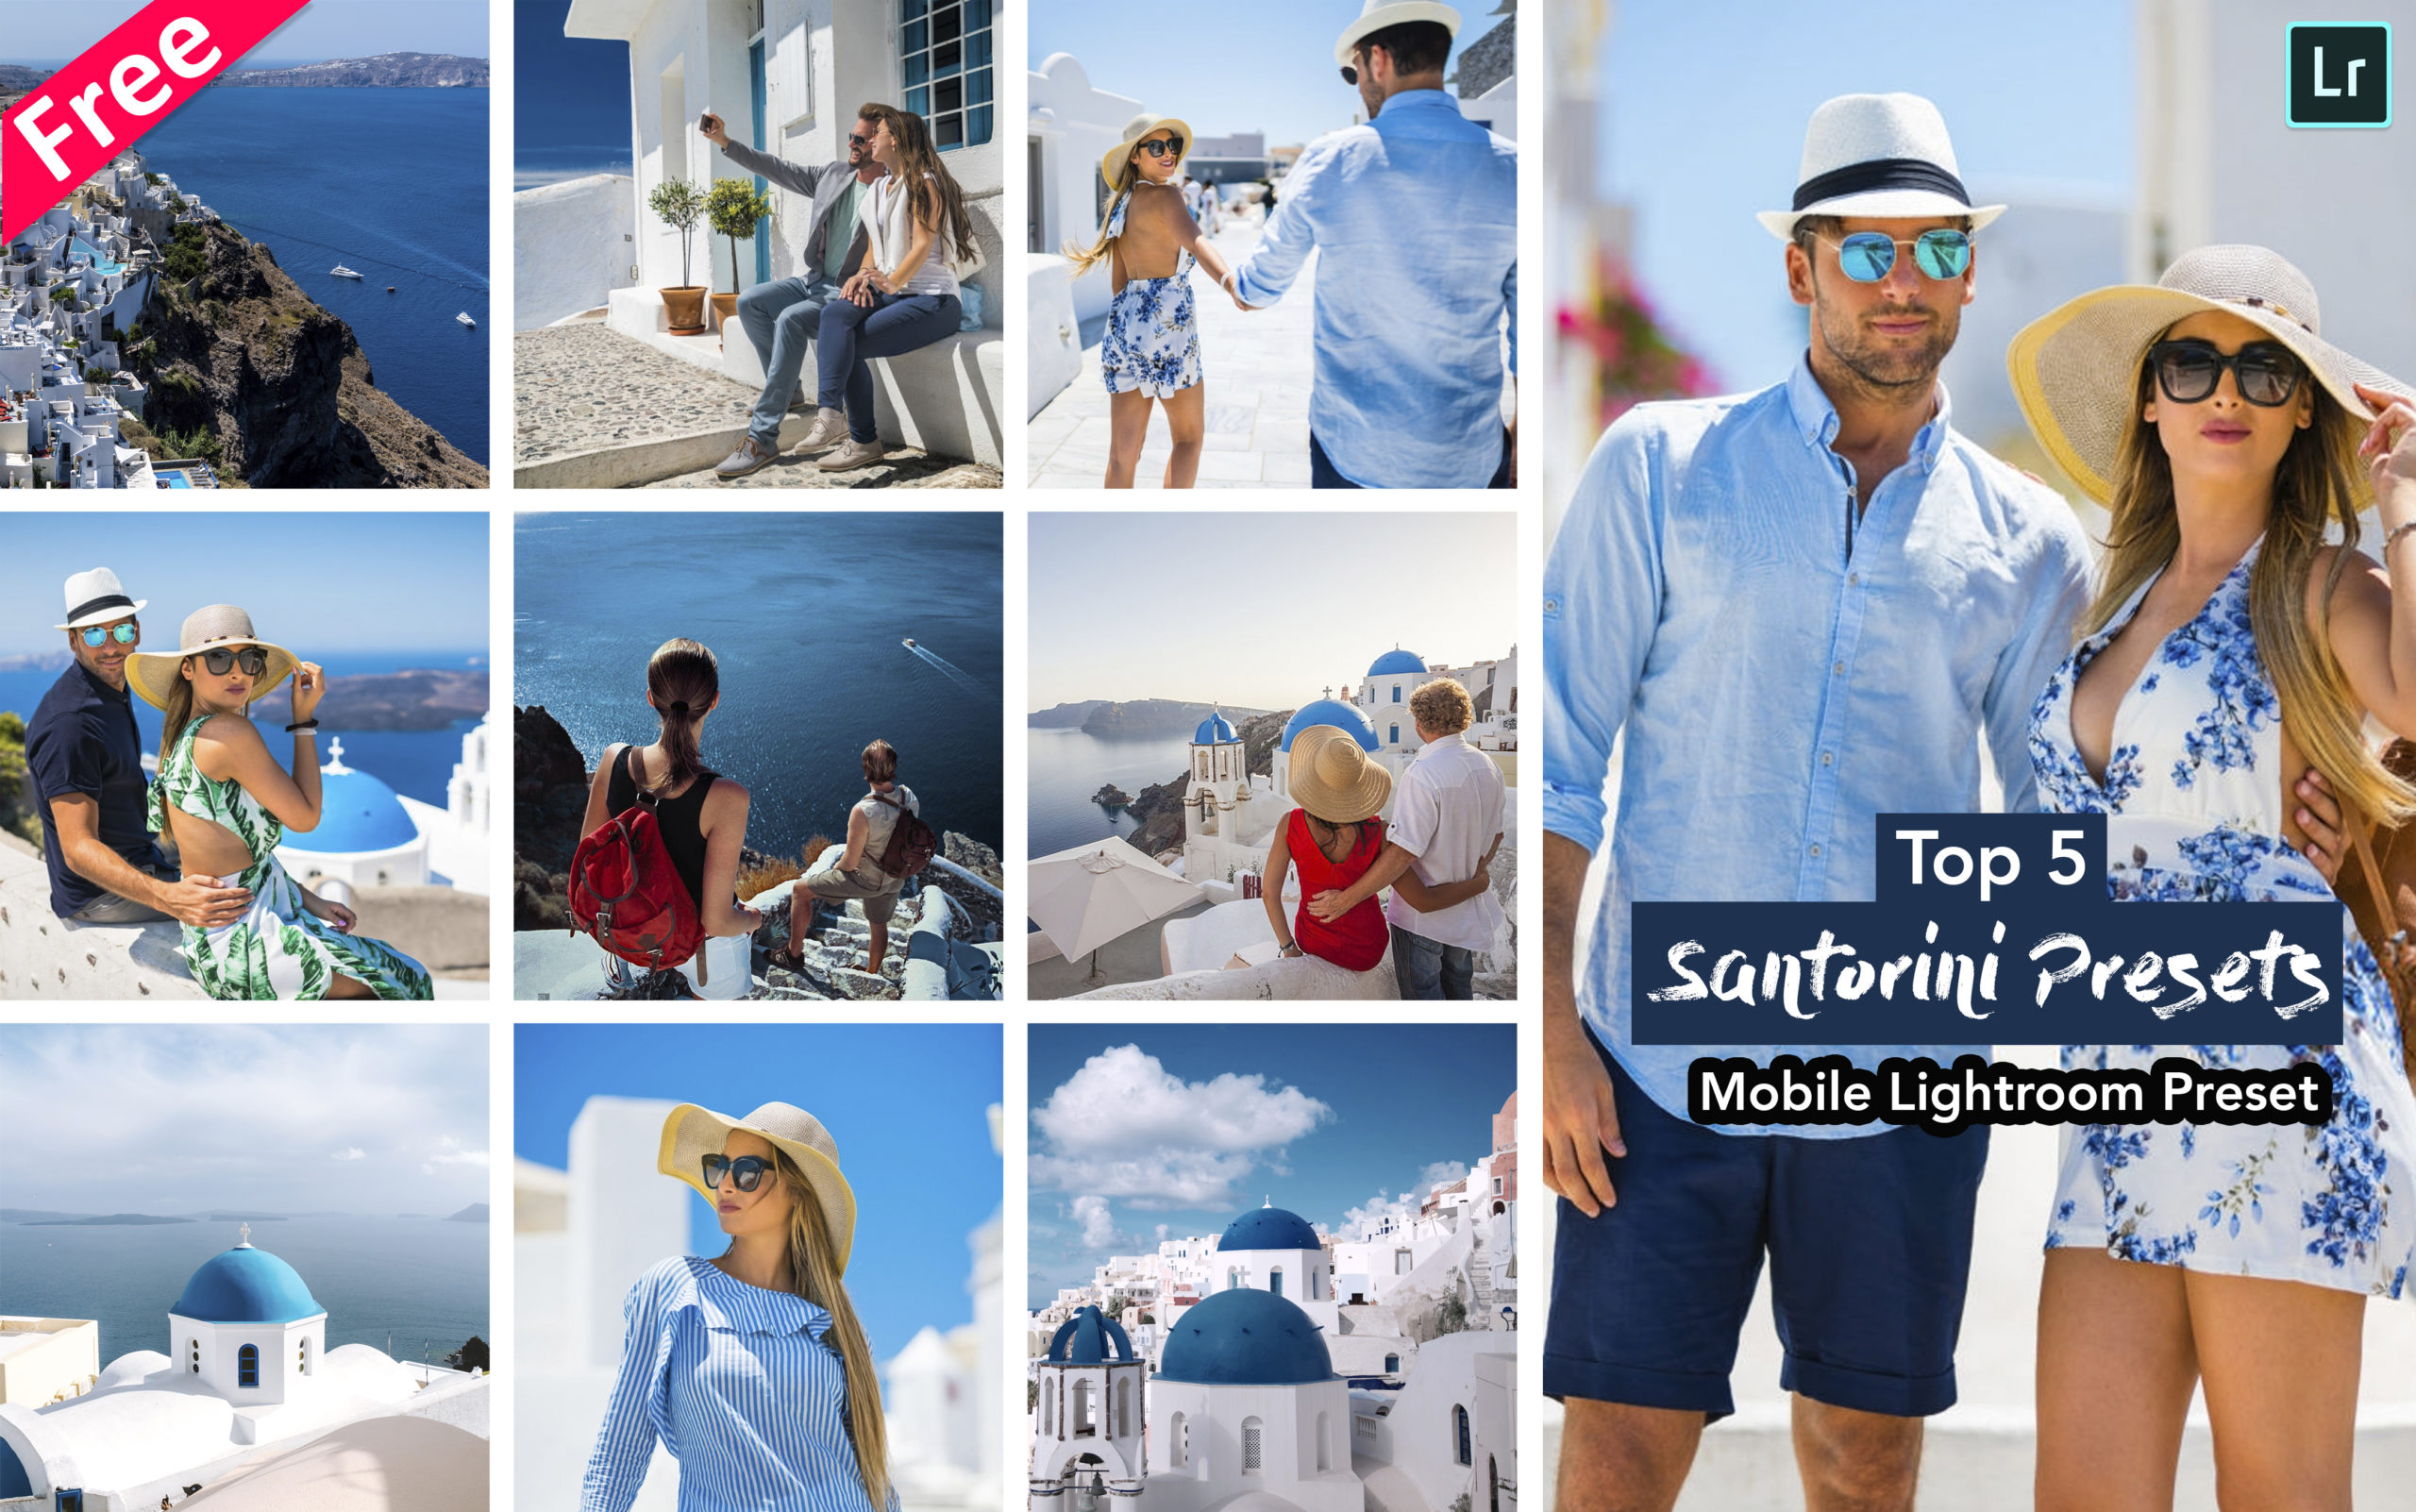 Download Top 5 Santorini Mobile Lightroom Preset for Free | How to Edit Your Travel Photos in Mobile Lightroom App